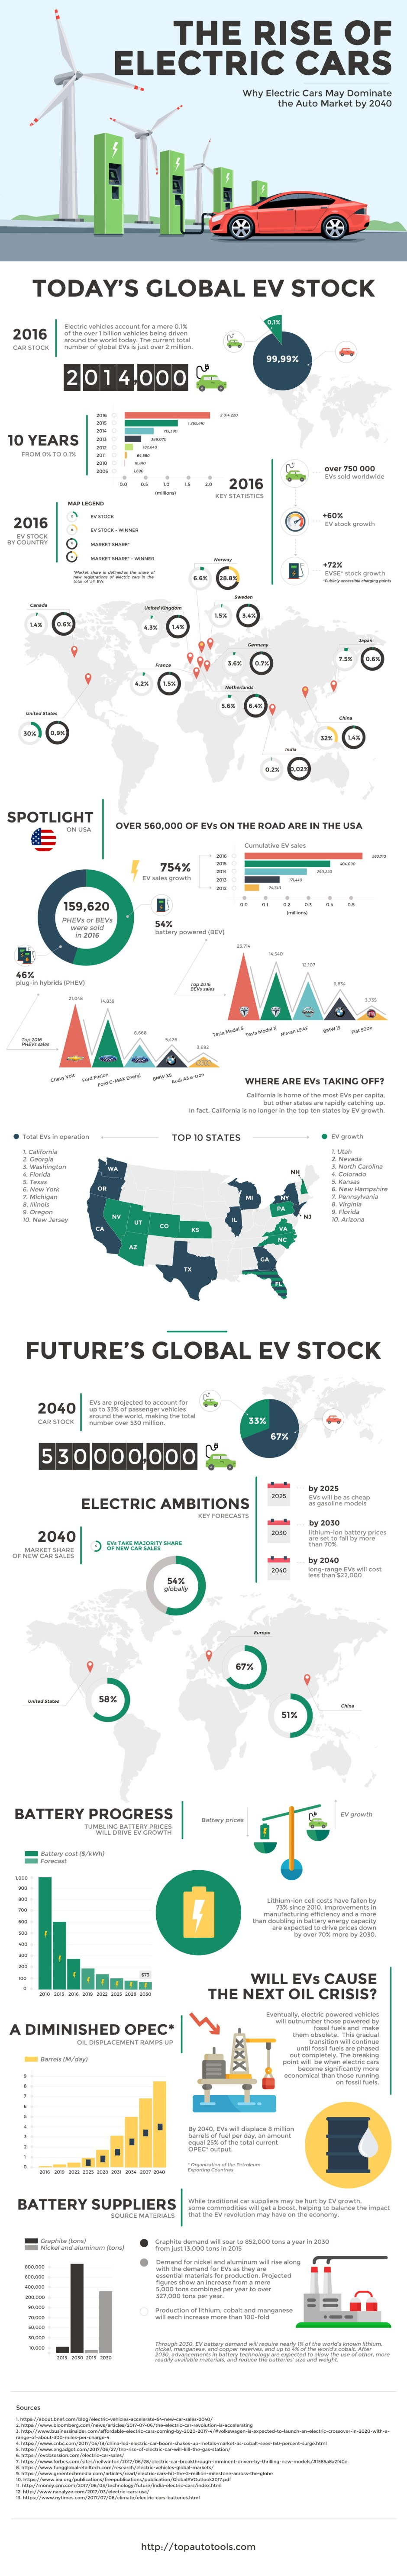 The Rise of Electric Cars - Infographic